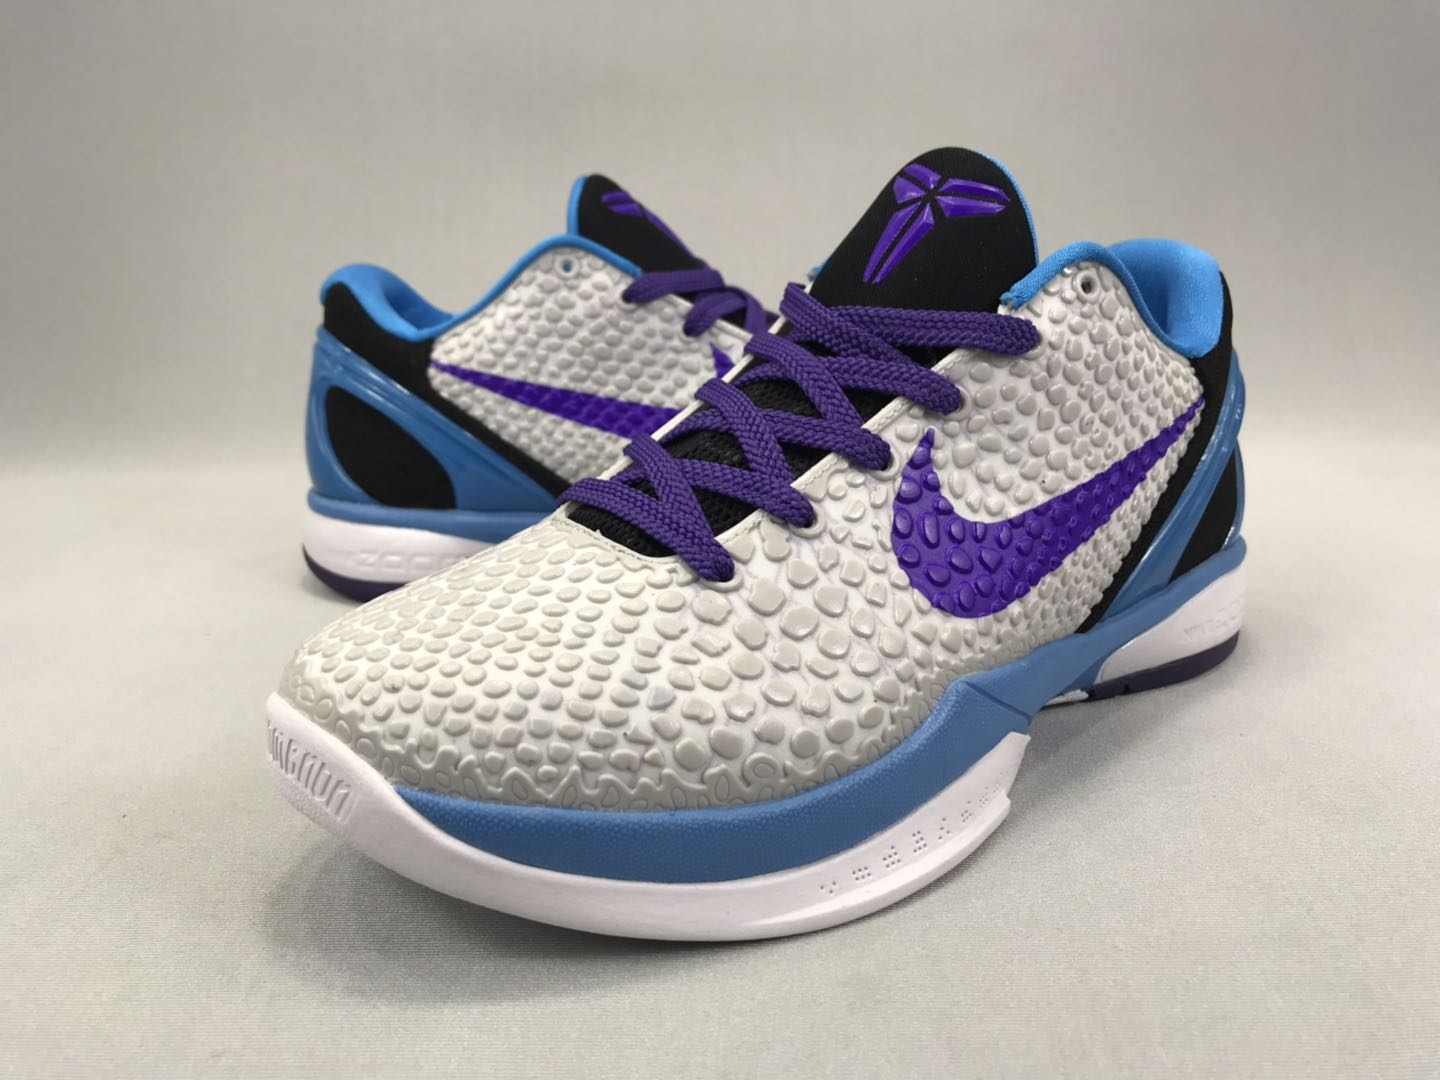 2020 Nike Kobe Bryant VI SnakeSkin Grey Purple Blue Black